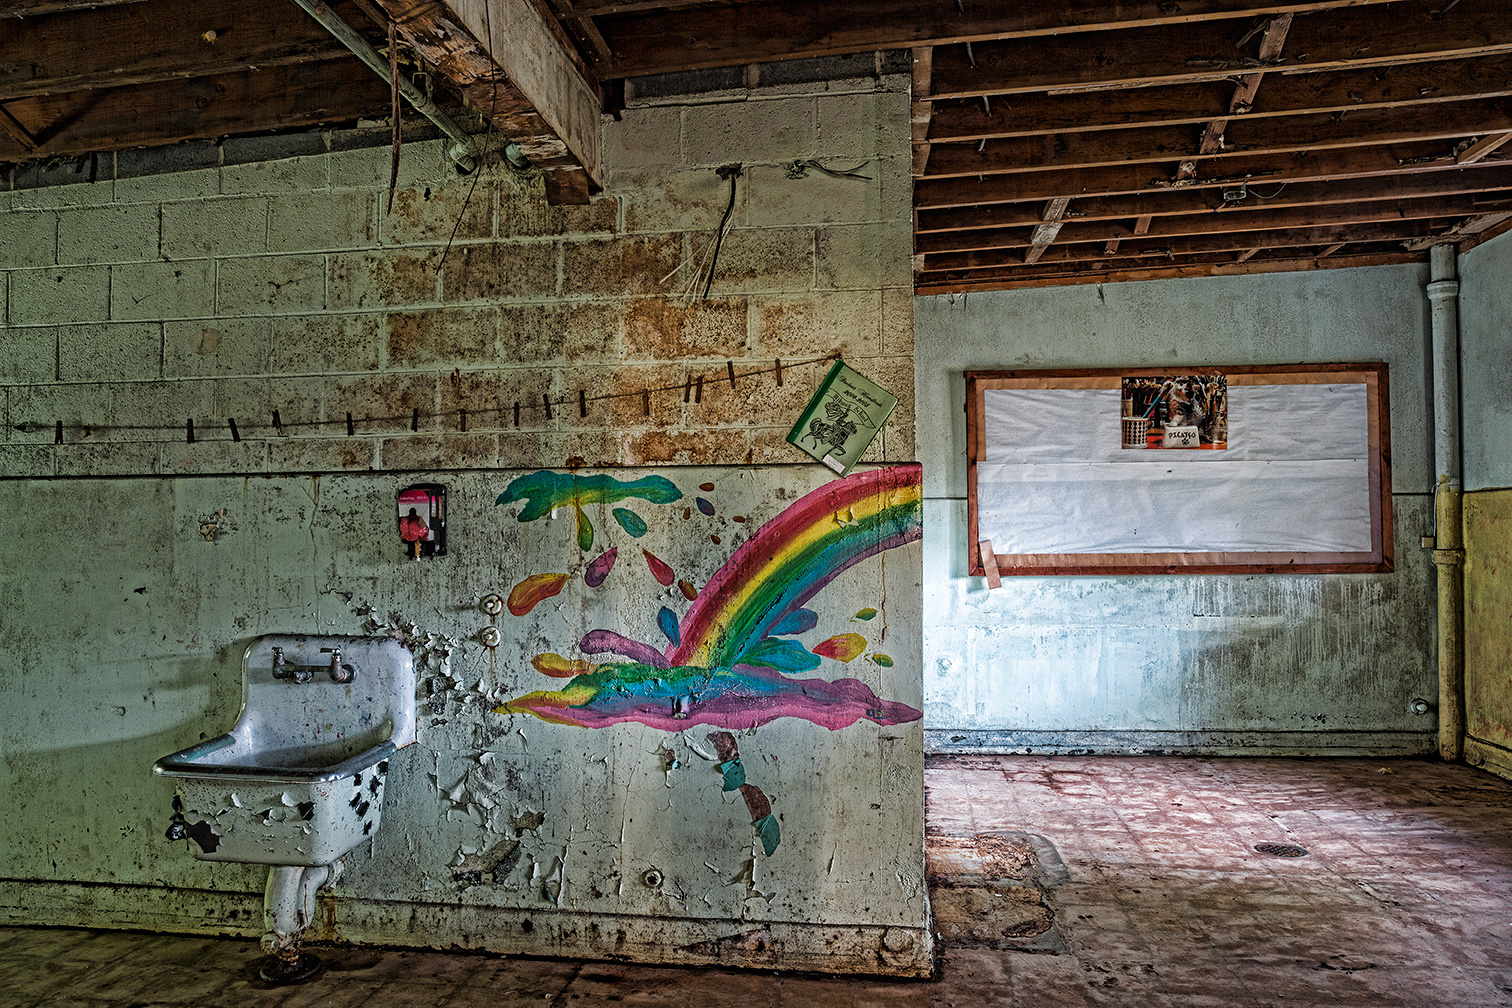 Nike Missile Battery Barracks Turned Into A School by Richard Lewis